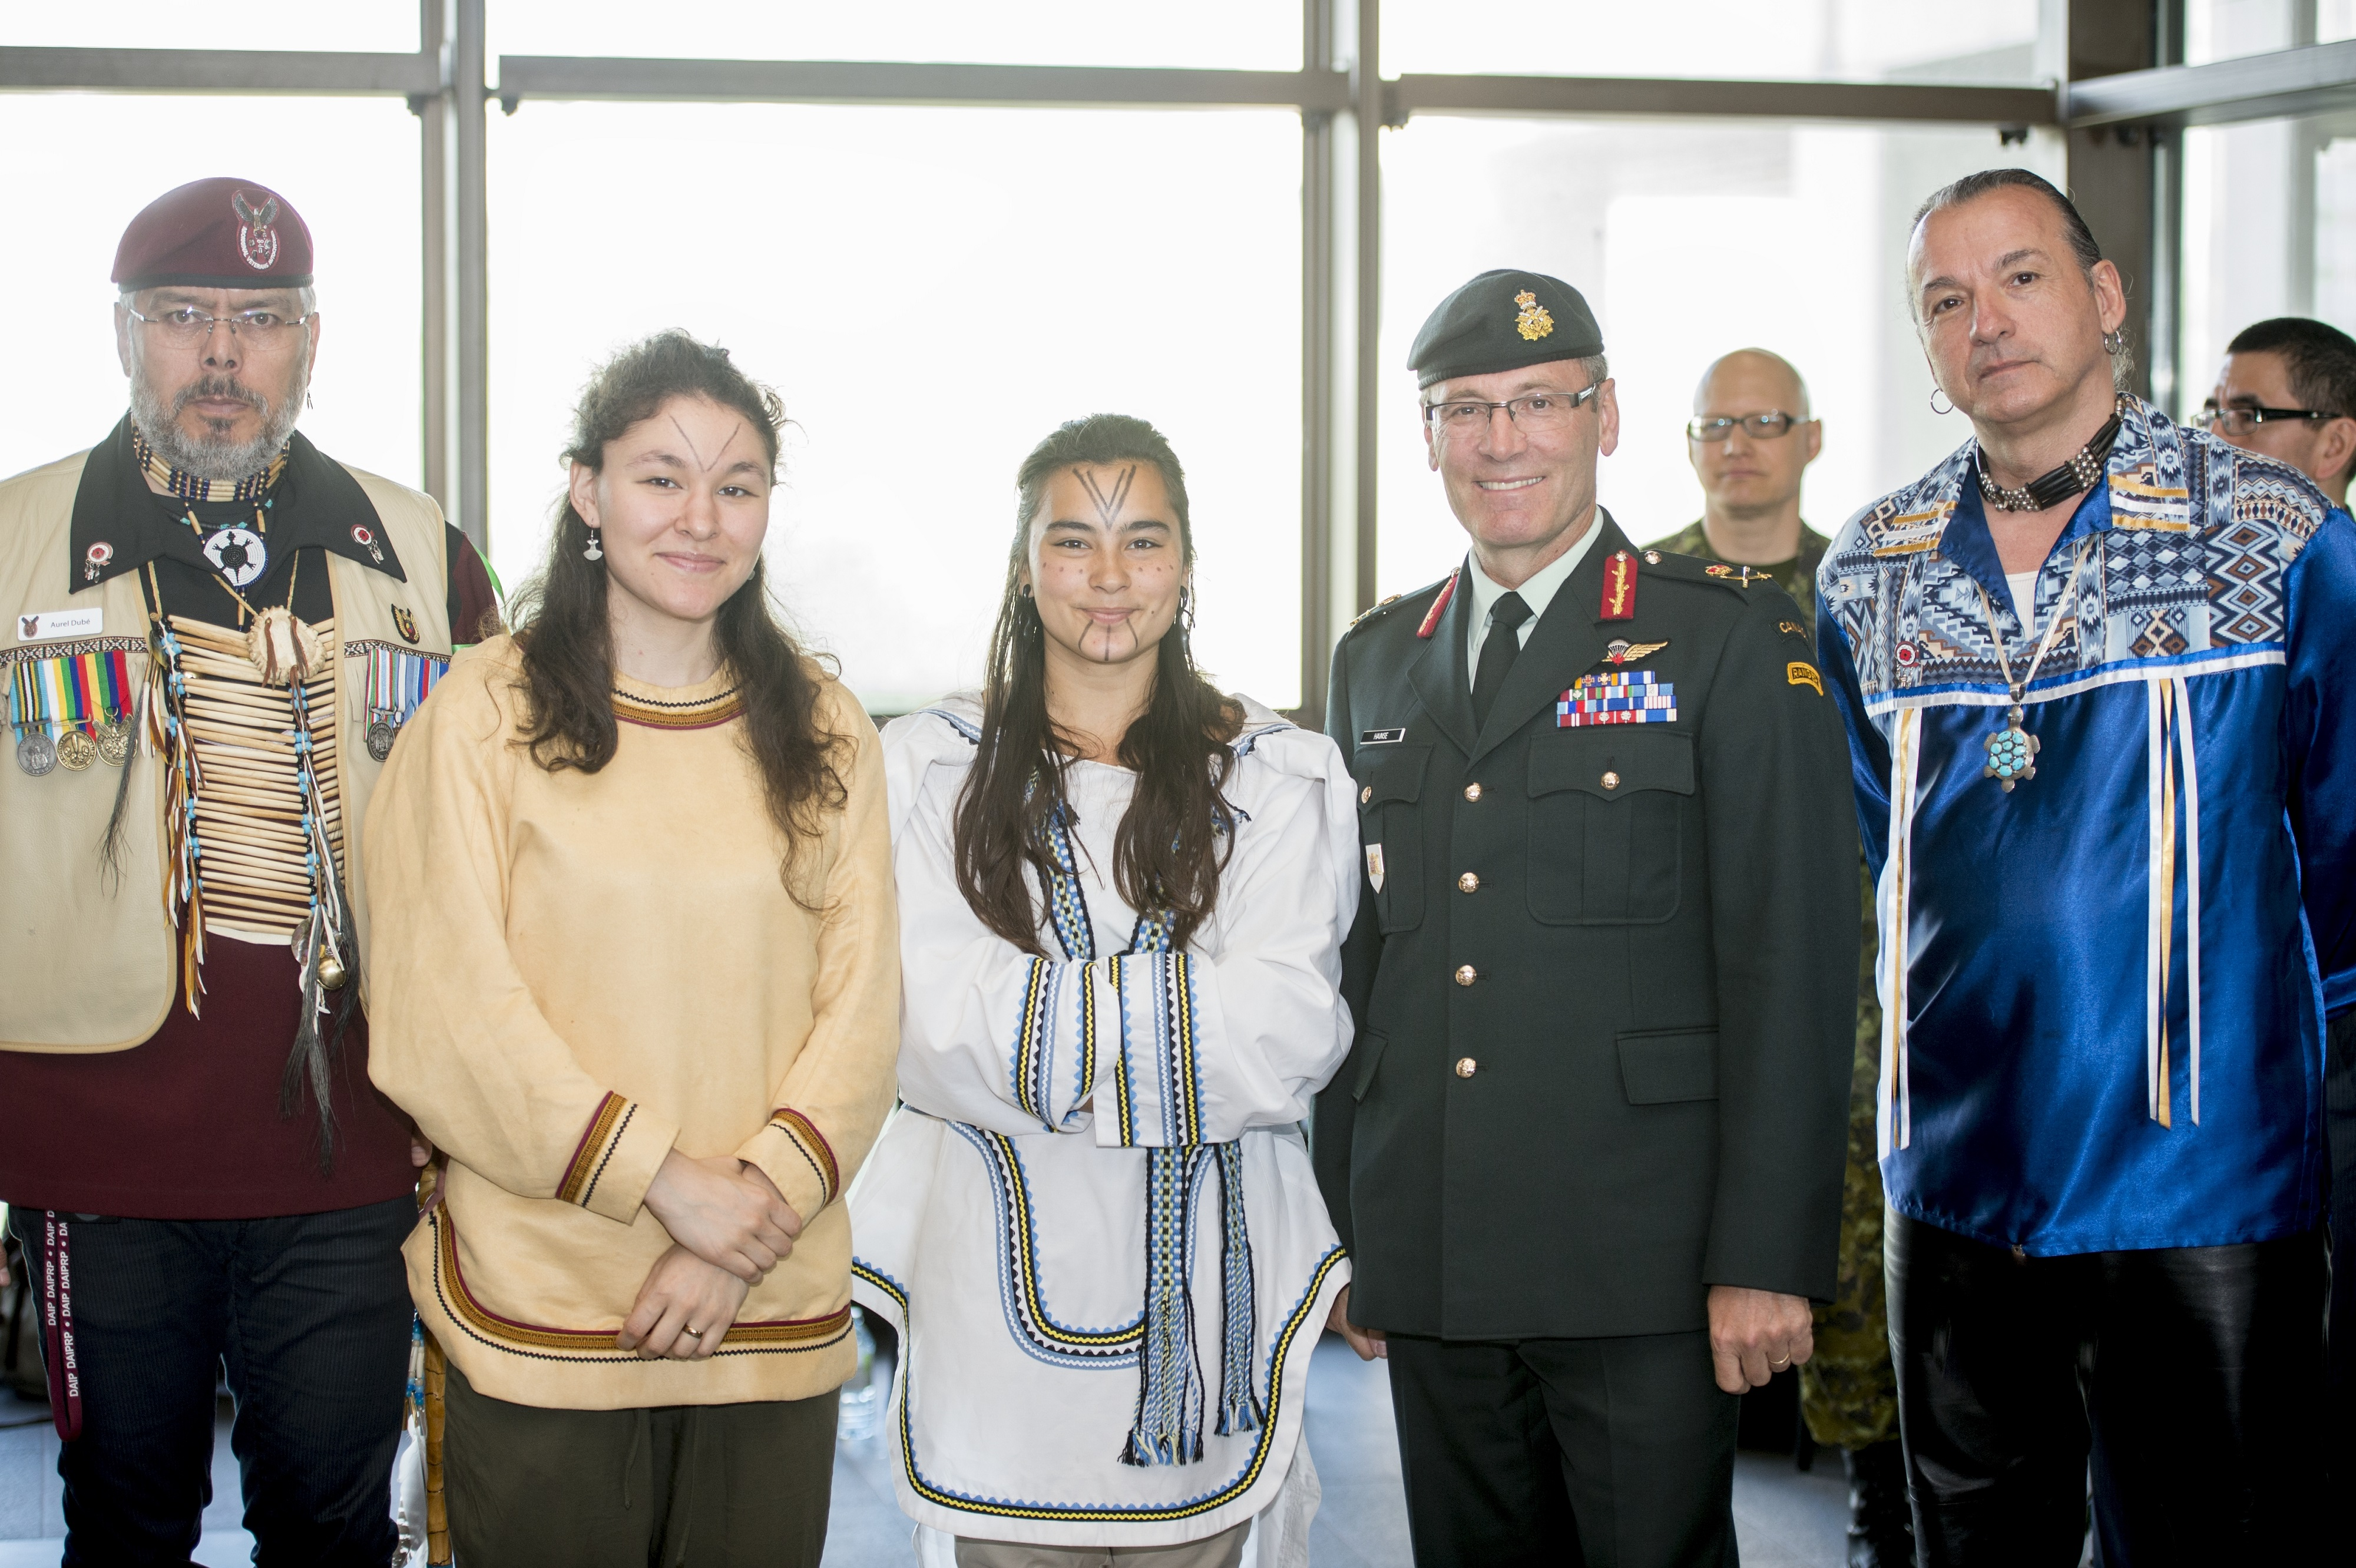 Lieutenant-General Marquis Hainse, Commander of the Canadian Army, is shown with participants of the 2015 Aboriginal Awareness Week ceremony held in the main concourse of National Defence Headquarters in Ottawa, Ontario, on May 19. Photo by: Cpl Andrew Wesley.